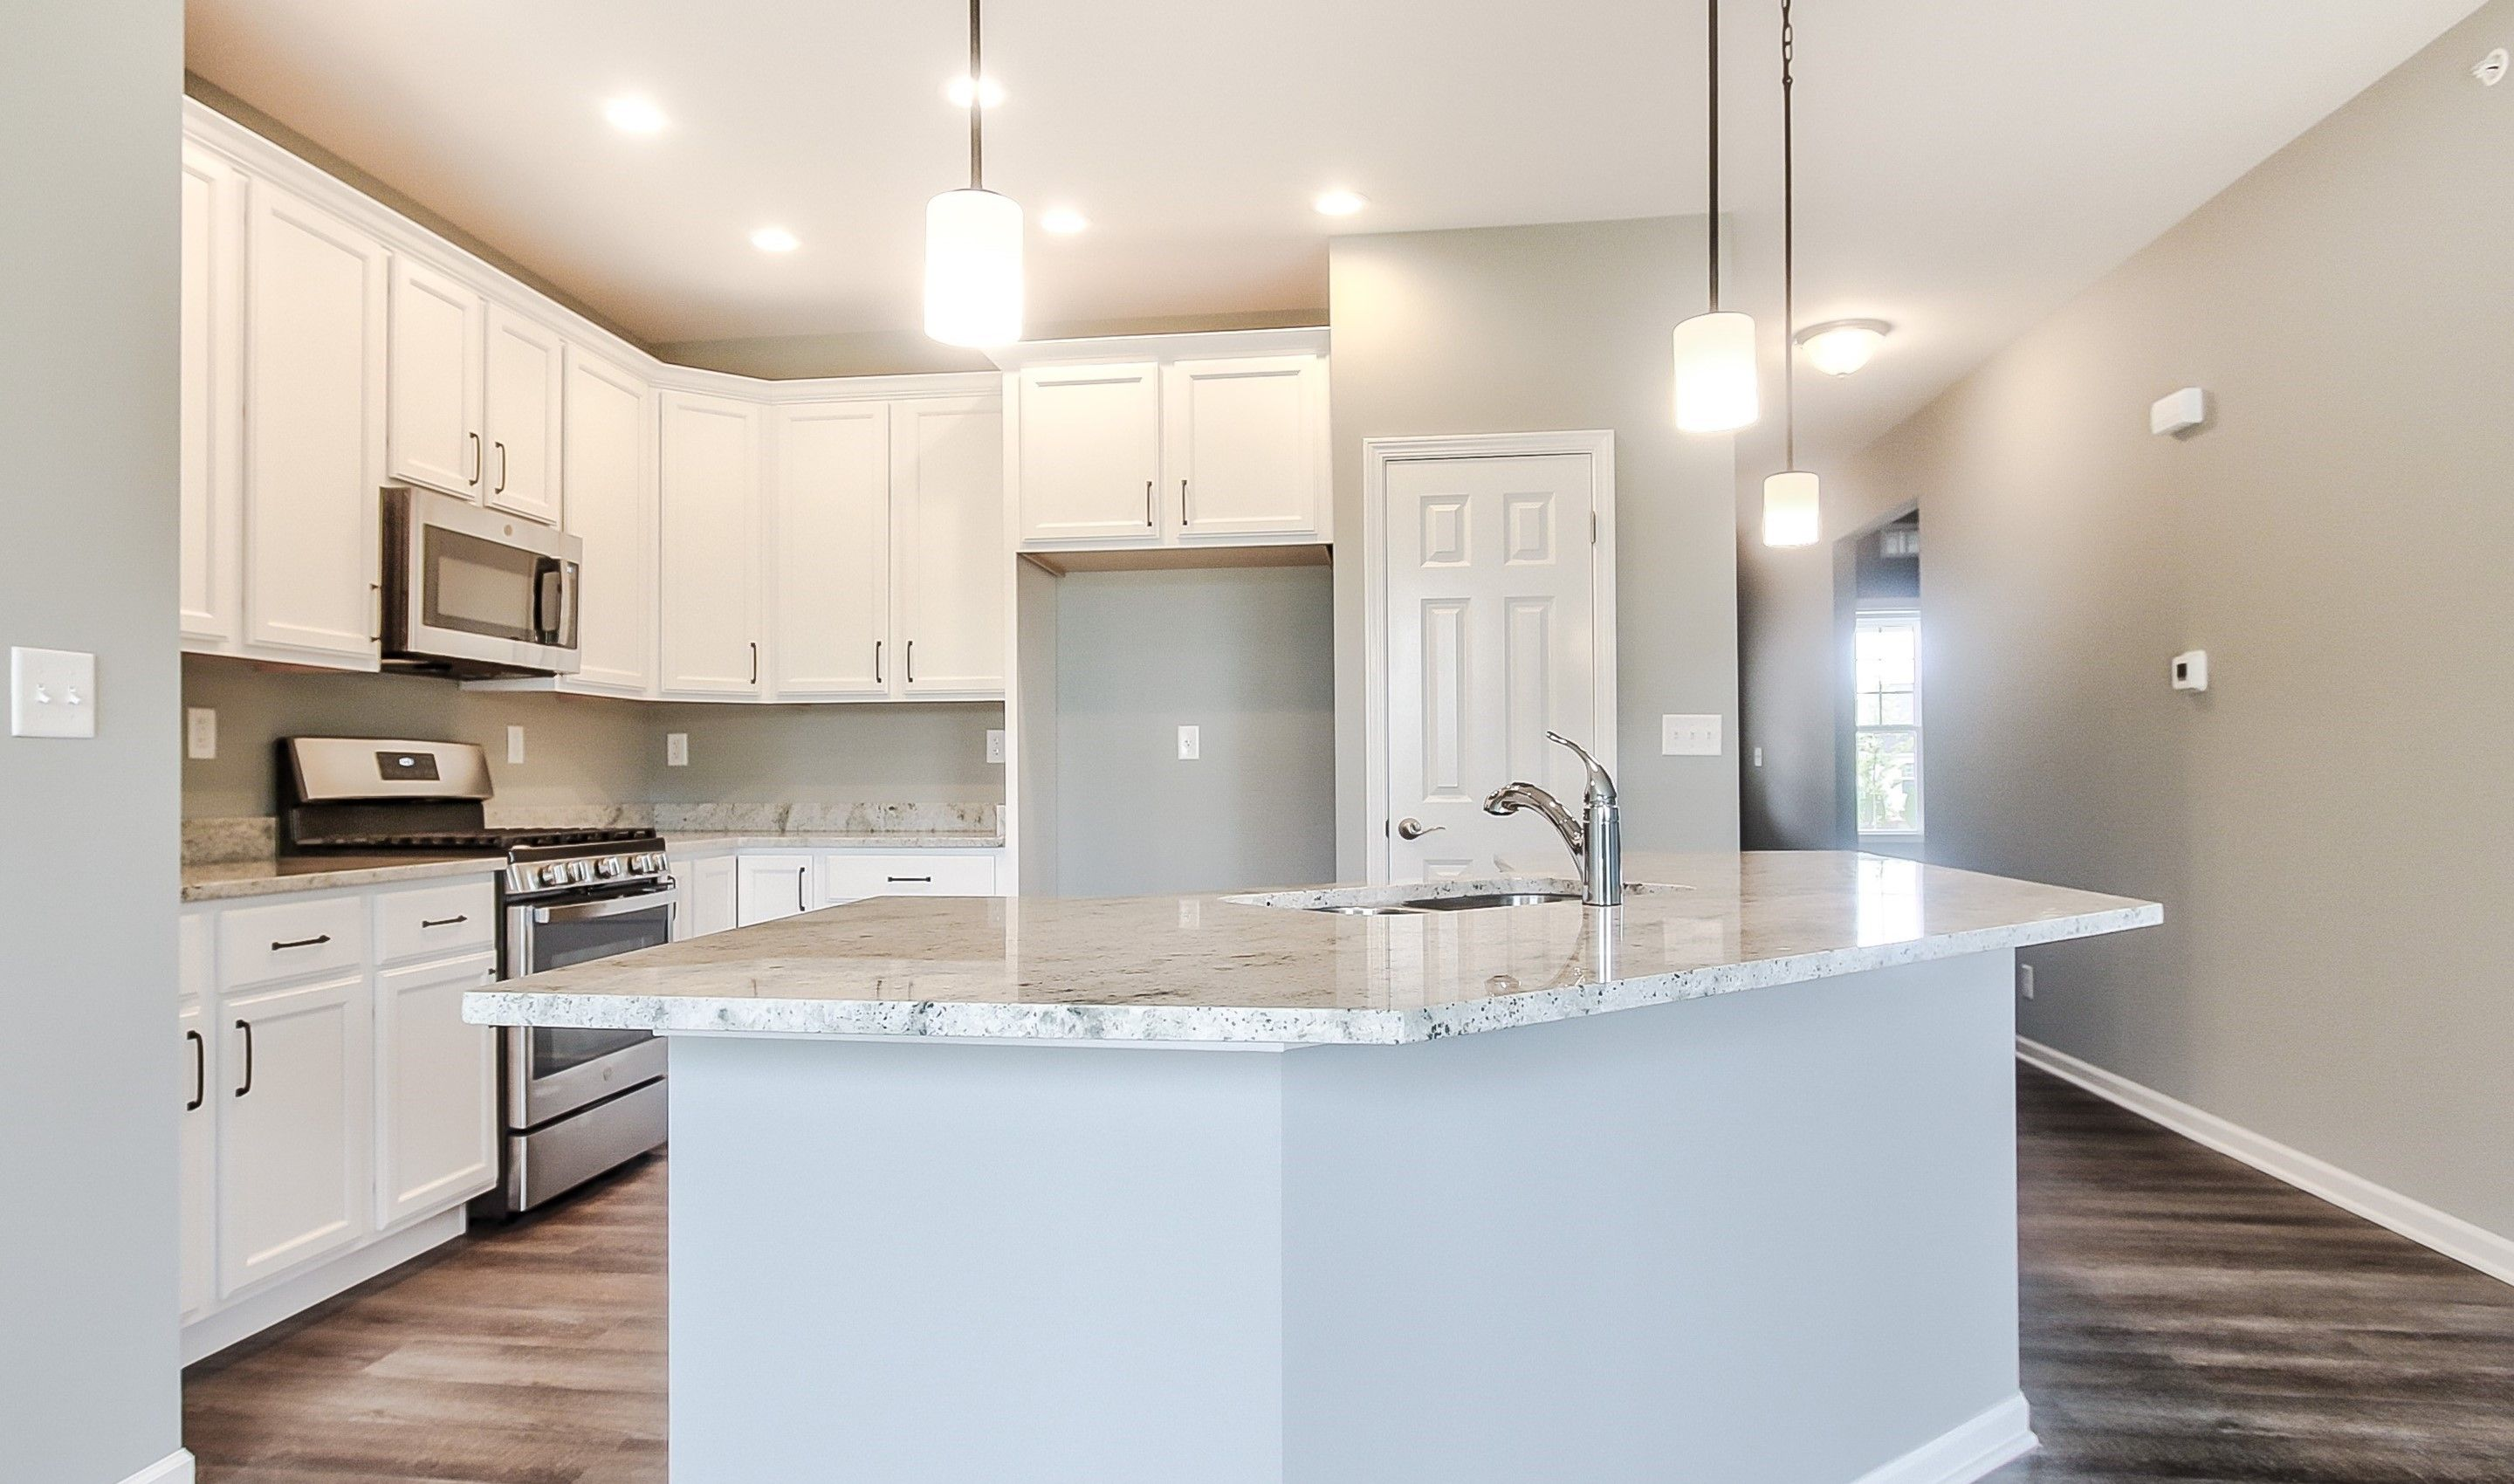 Kitchen featured in the Loren By K. Hovnanian® Homes in Chicago, IL